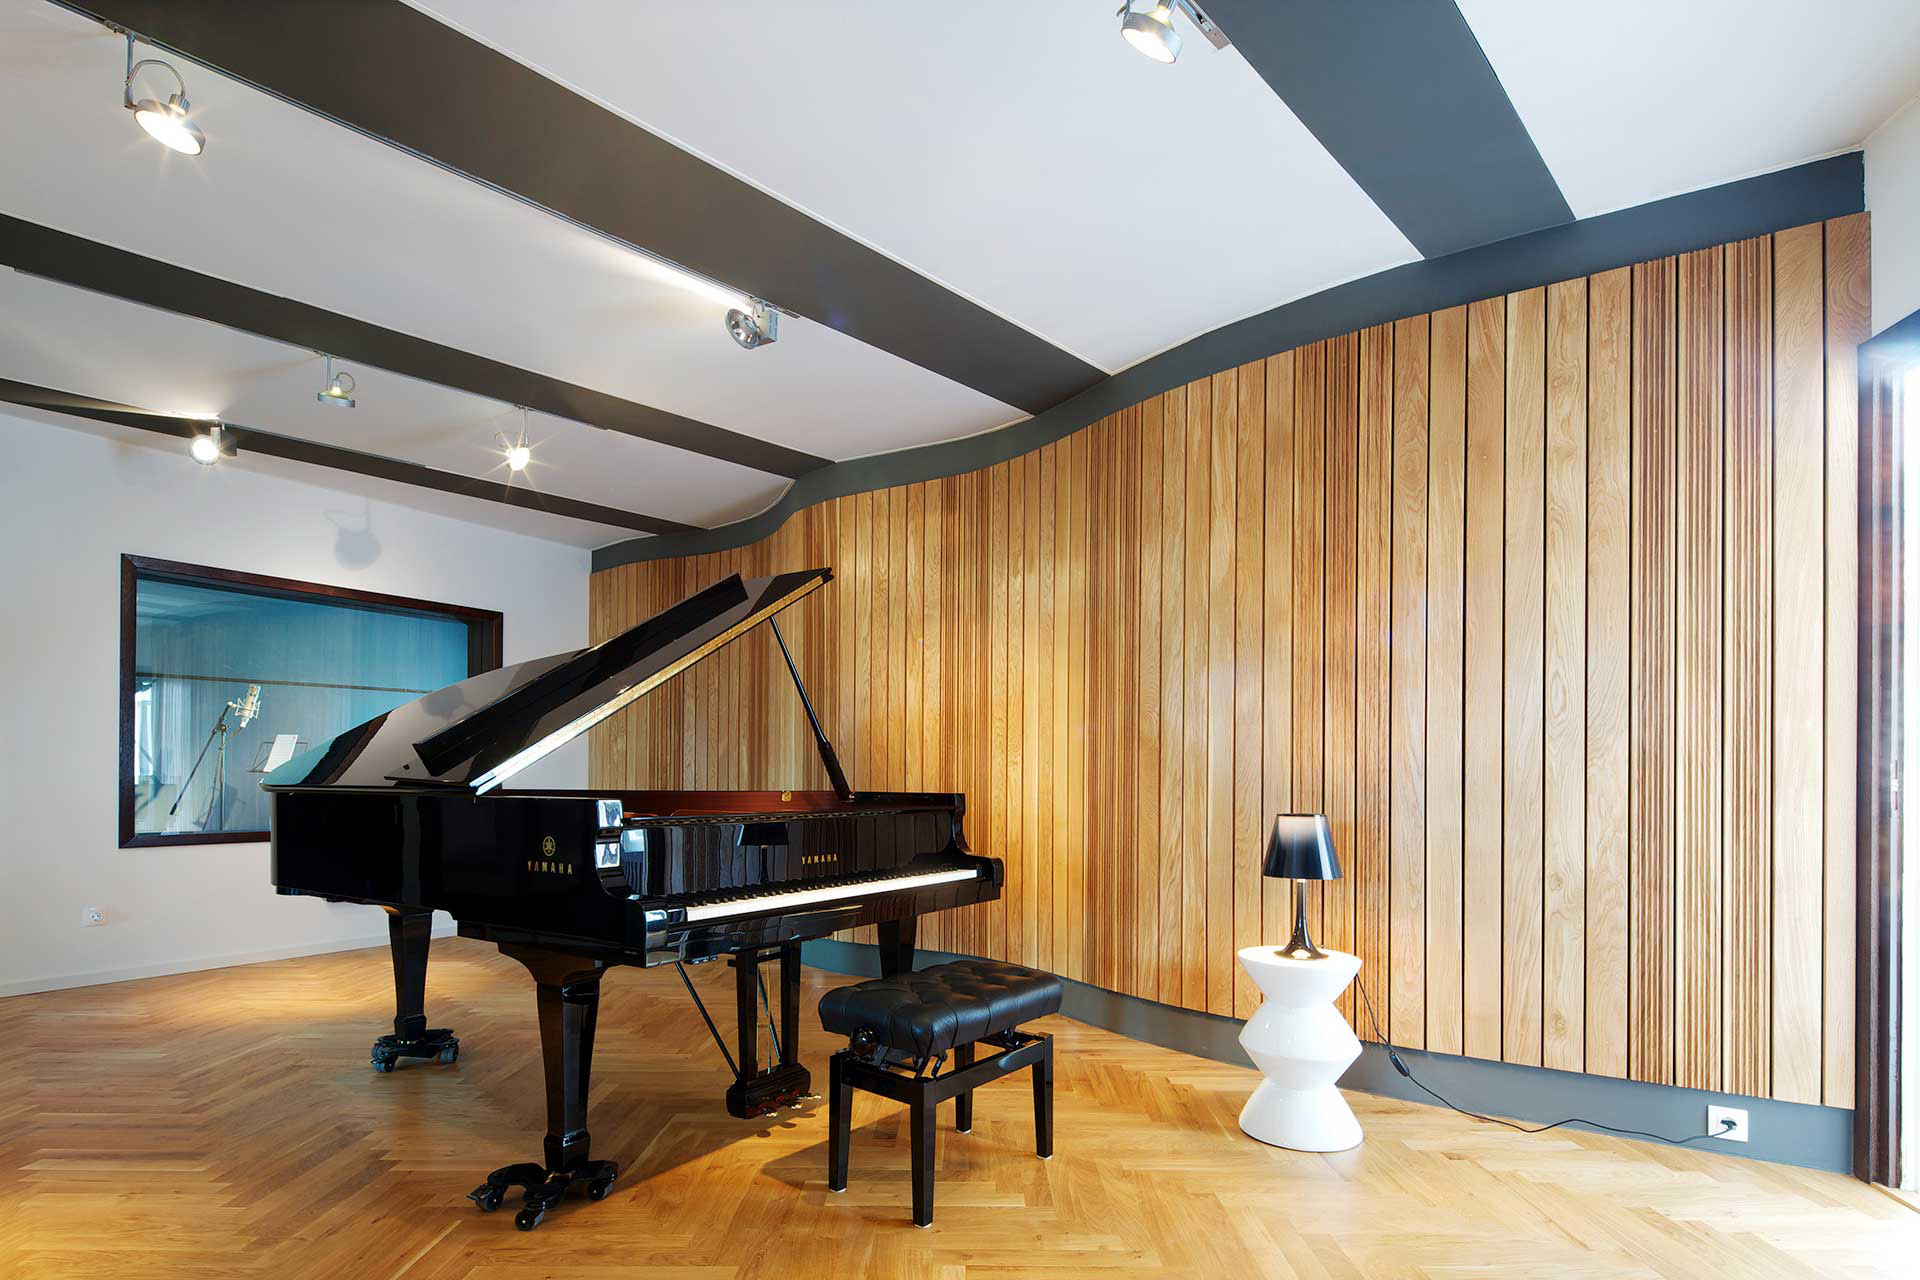 Peachy High End Studio Jrs Jazzanova Recording Studio Berlin Germany Largest Home Design Picture Inspirations Pitcheantrous